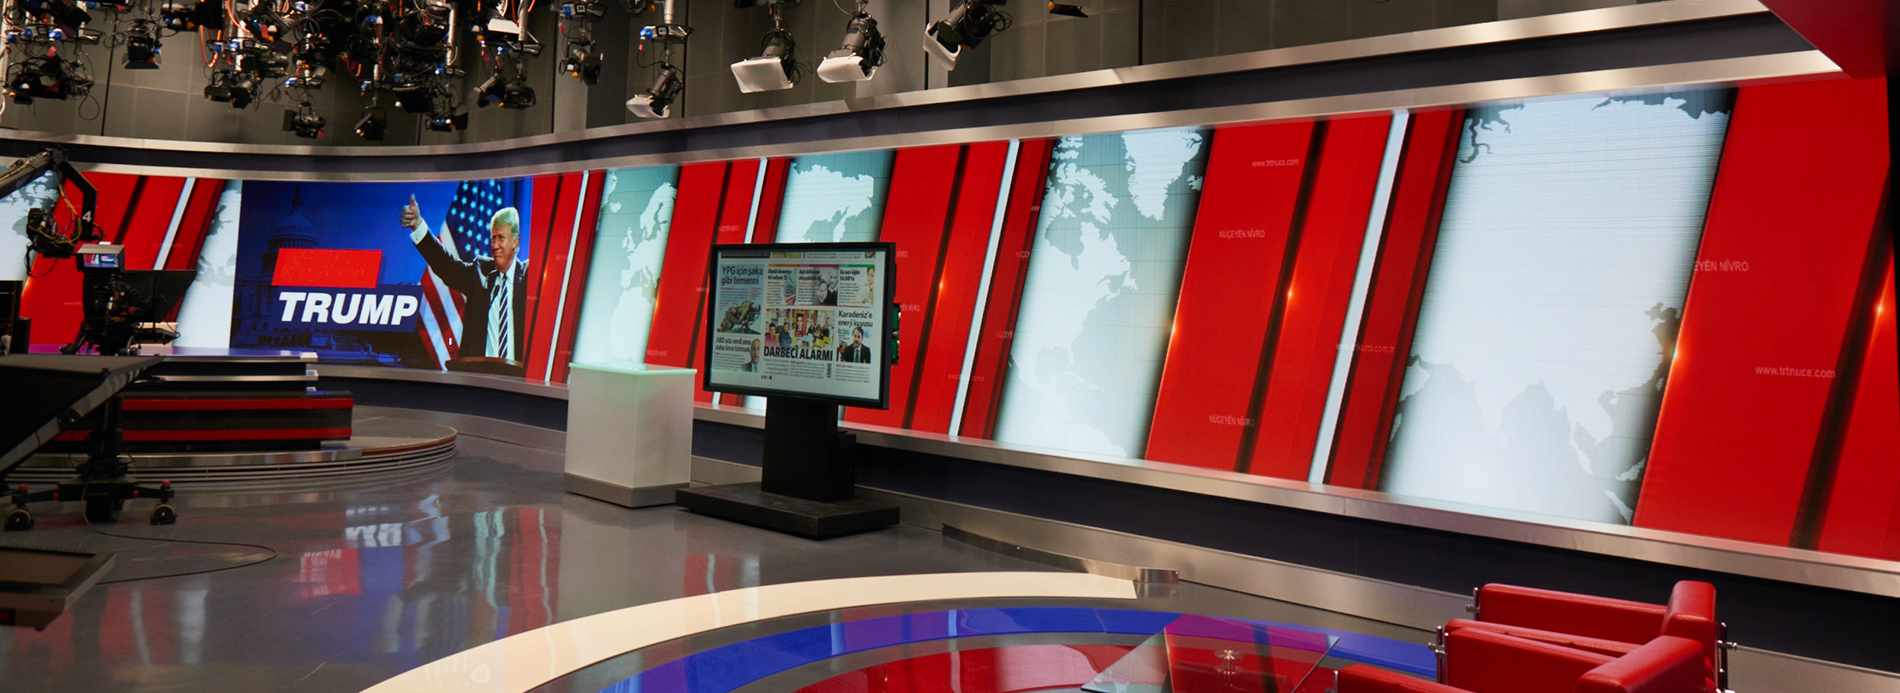 TRT Broadcasting Studio LED-Display